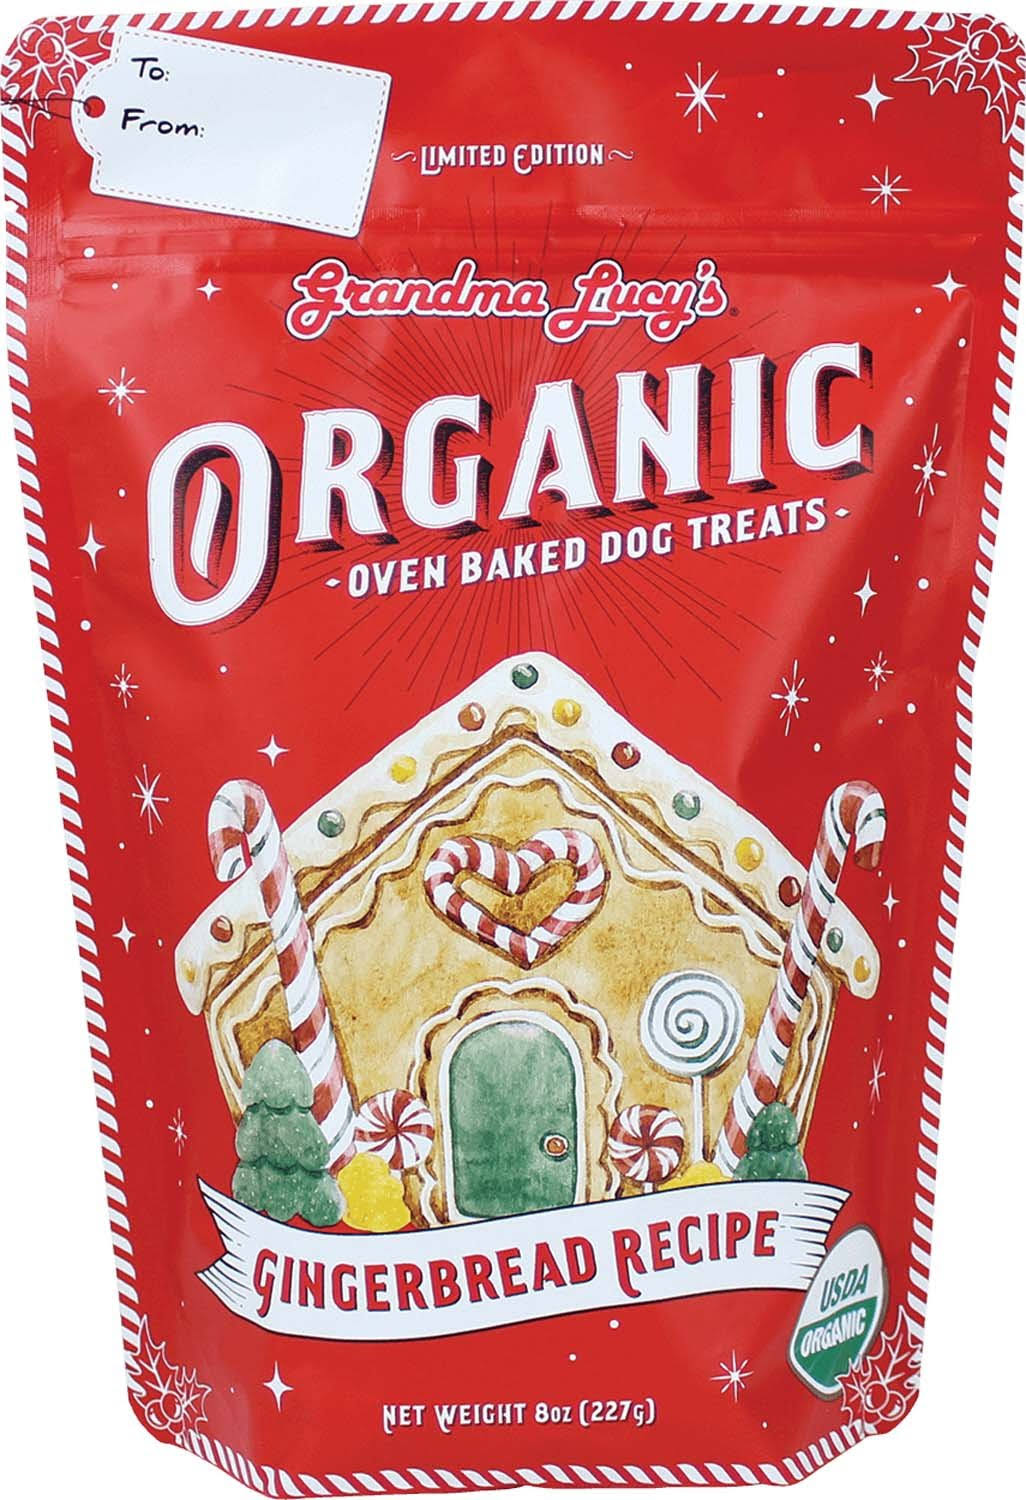 Grandma Lucy's Organic Gingerbread Oven Baked Dog Treats, 8-oz Bag